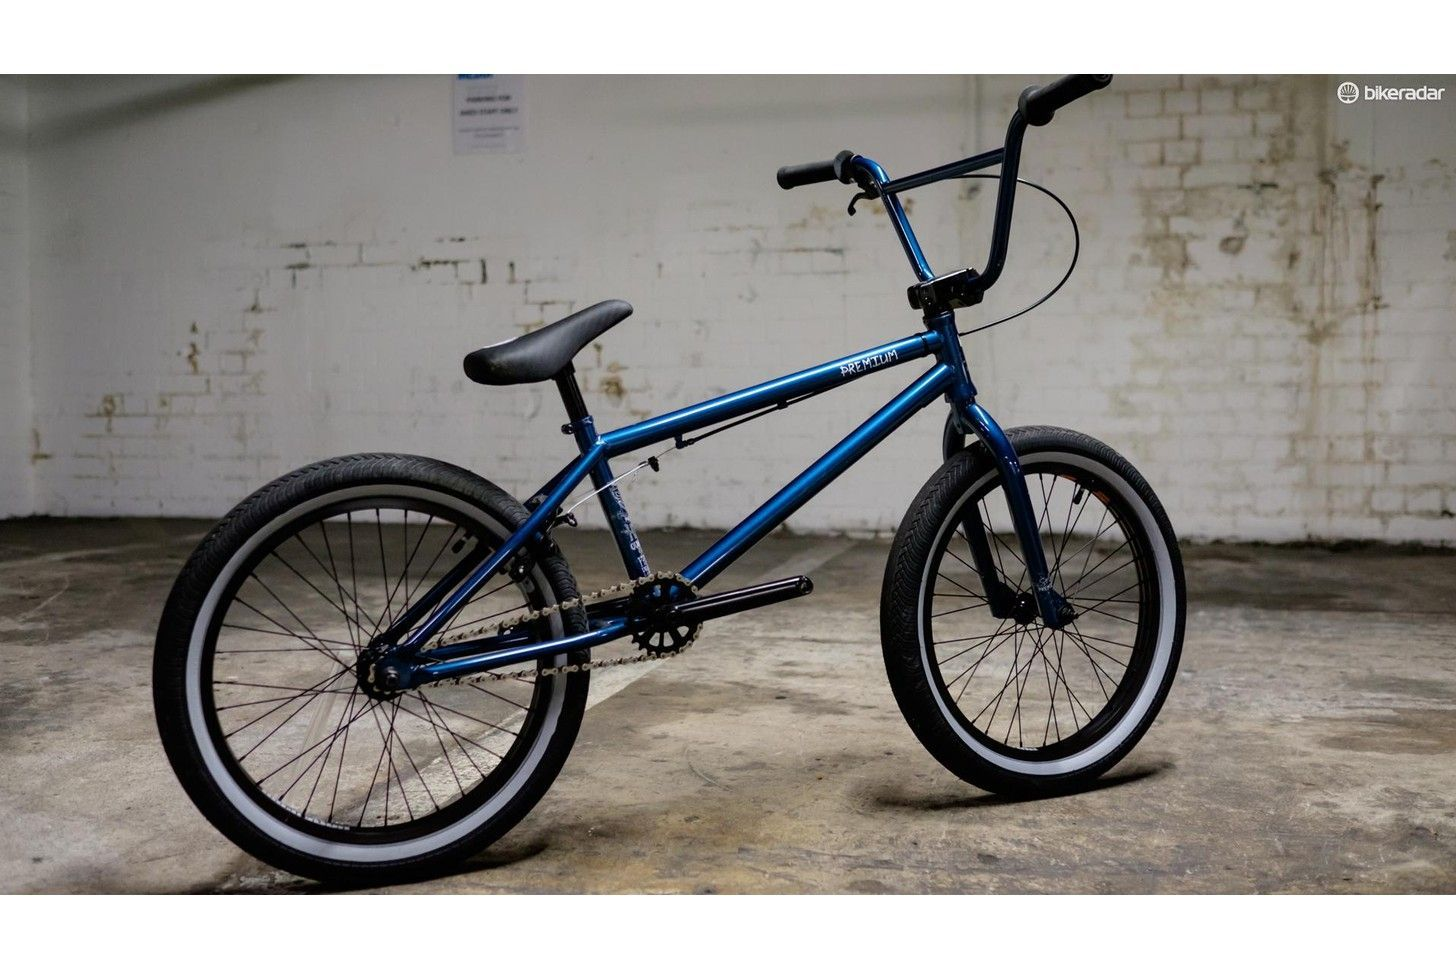 Premium Solo Bmx Bike Do You Ride Bmx In 2020 Bmx Bikes Best